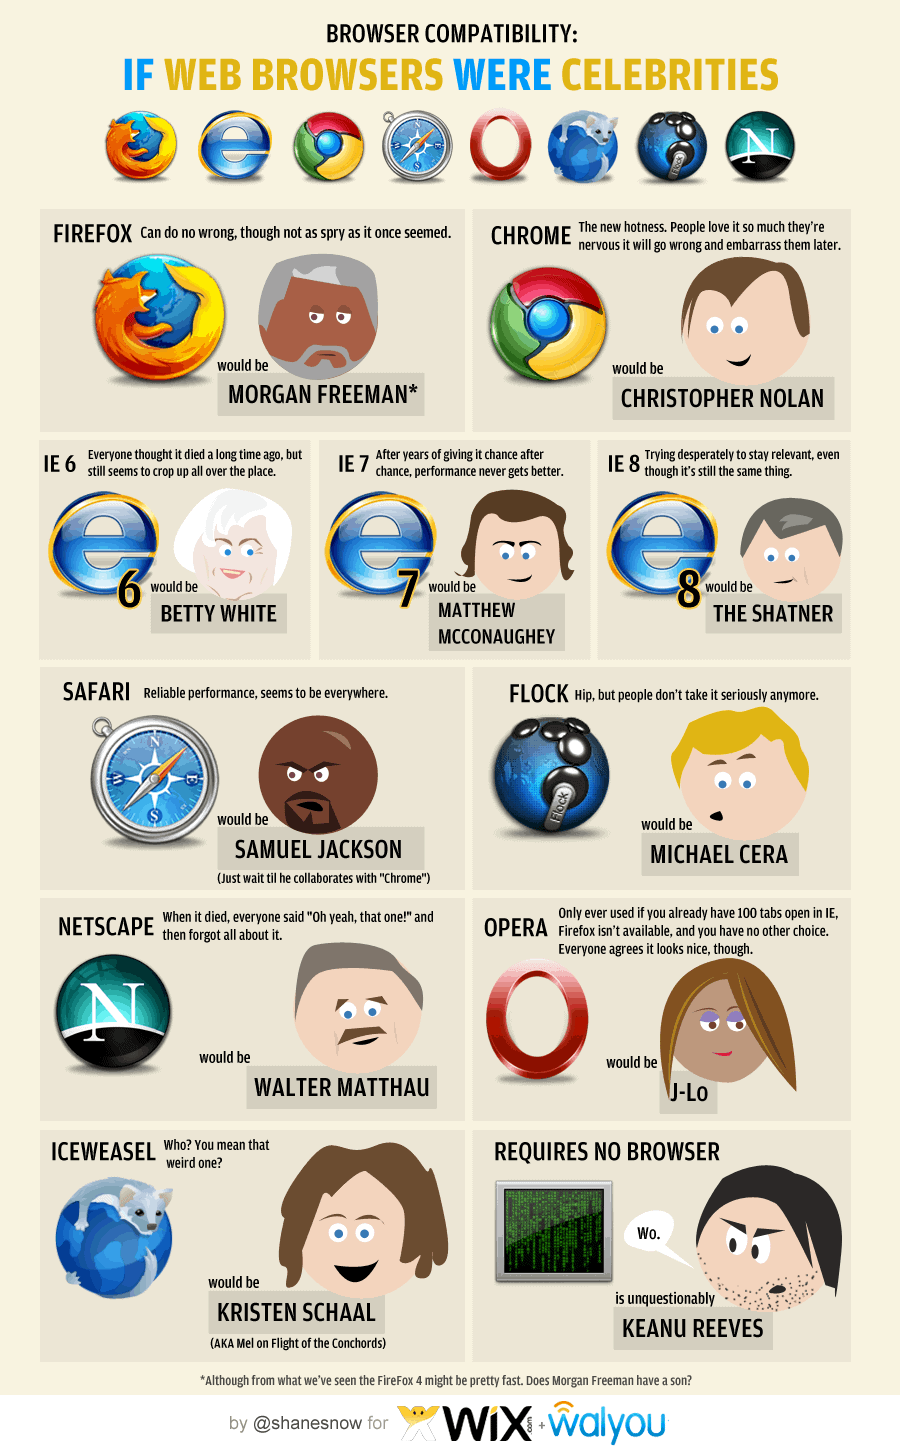 Celebrities as web browsers